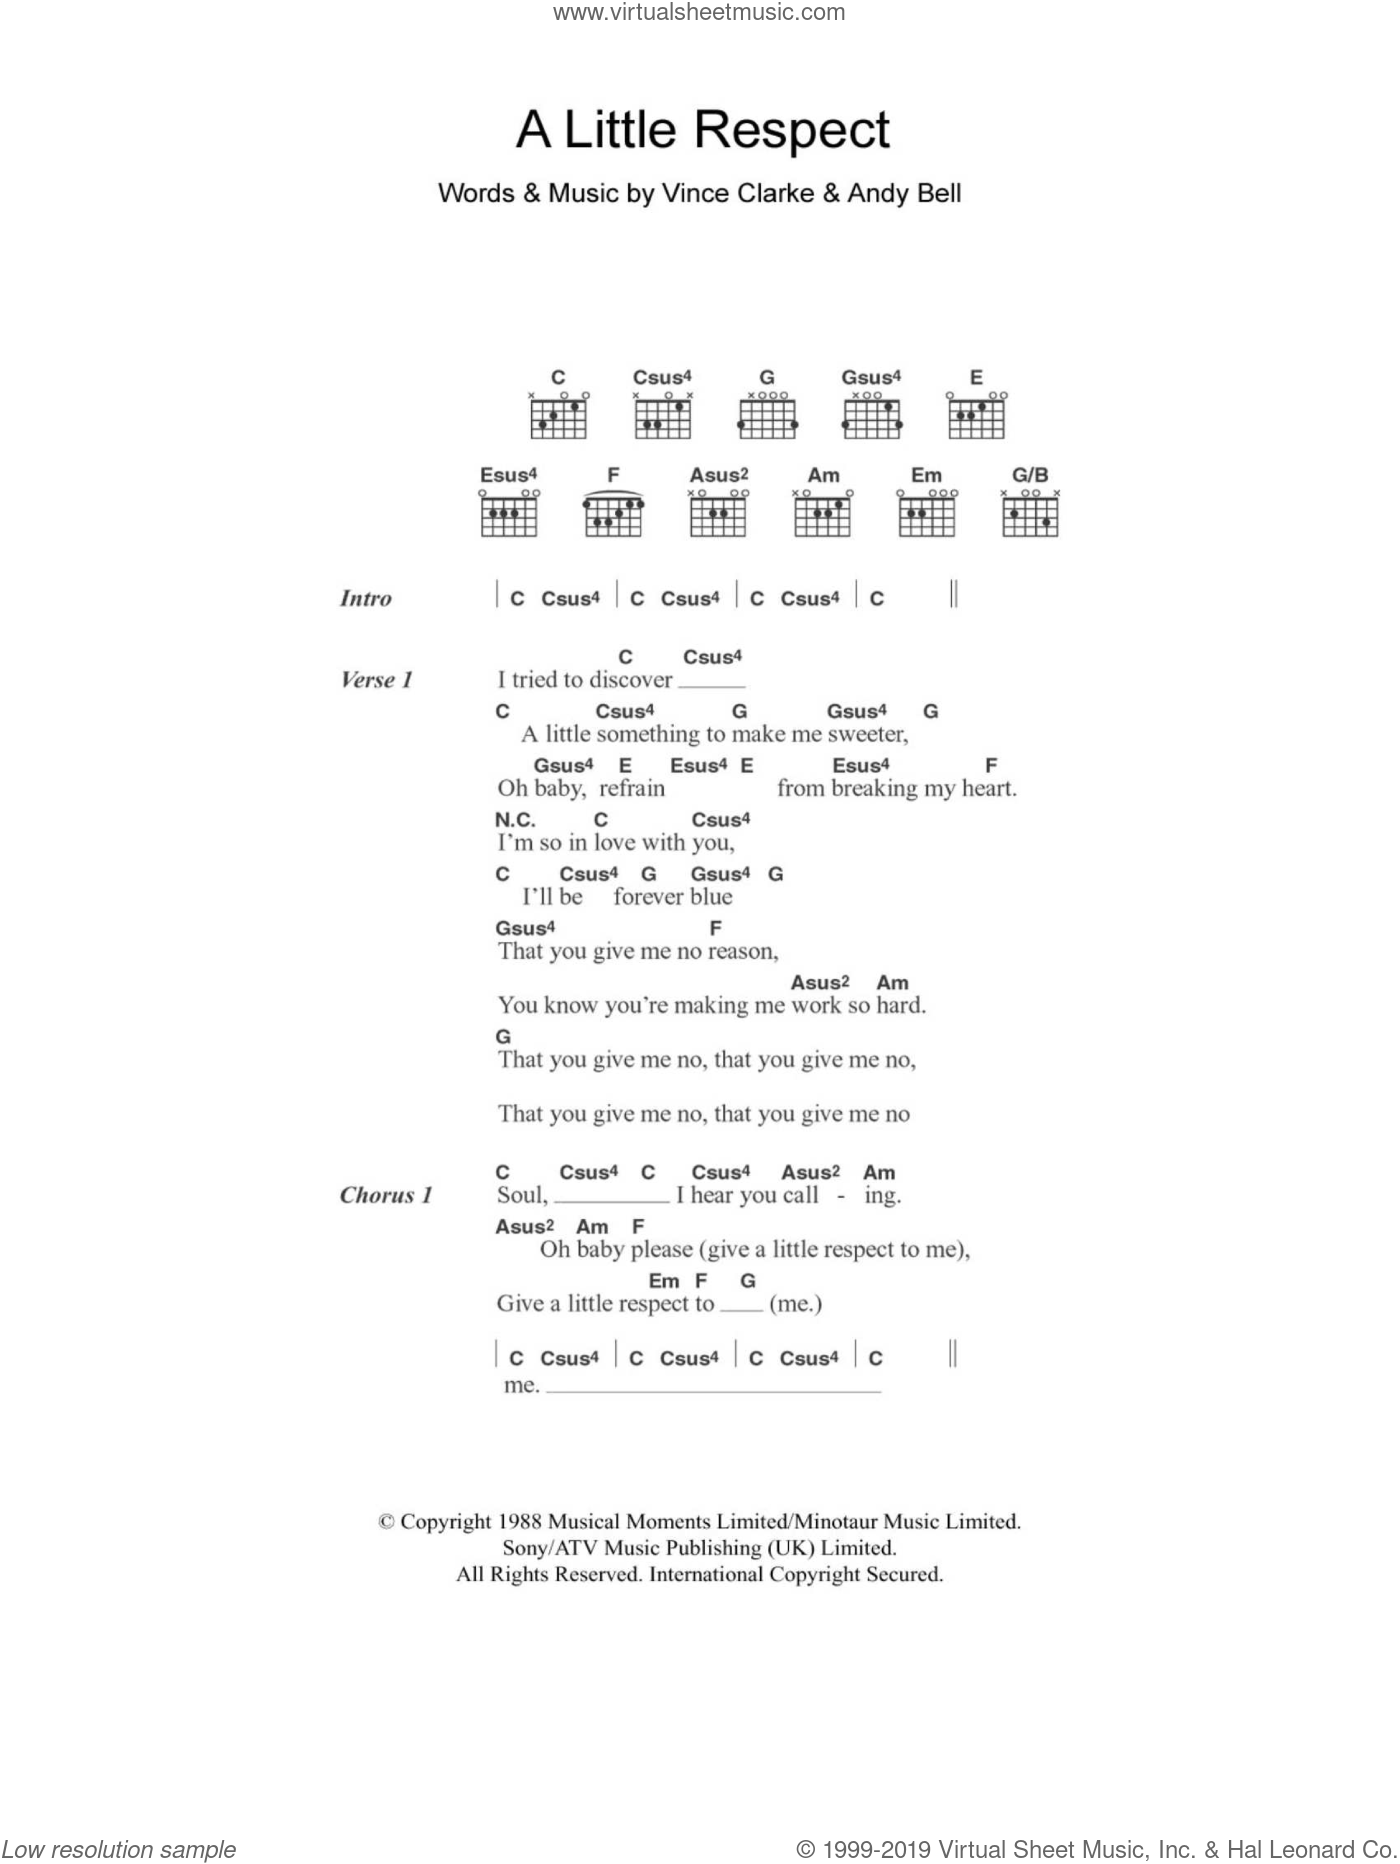 A Little Respect sheet music for guitar (chords, lyrics, melody) by Vince Clarke